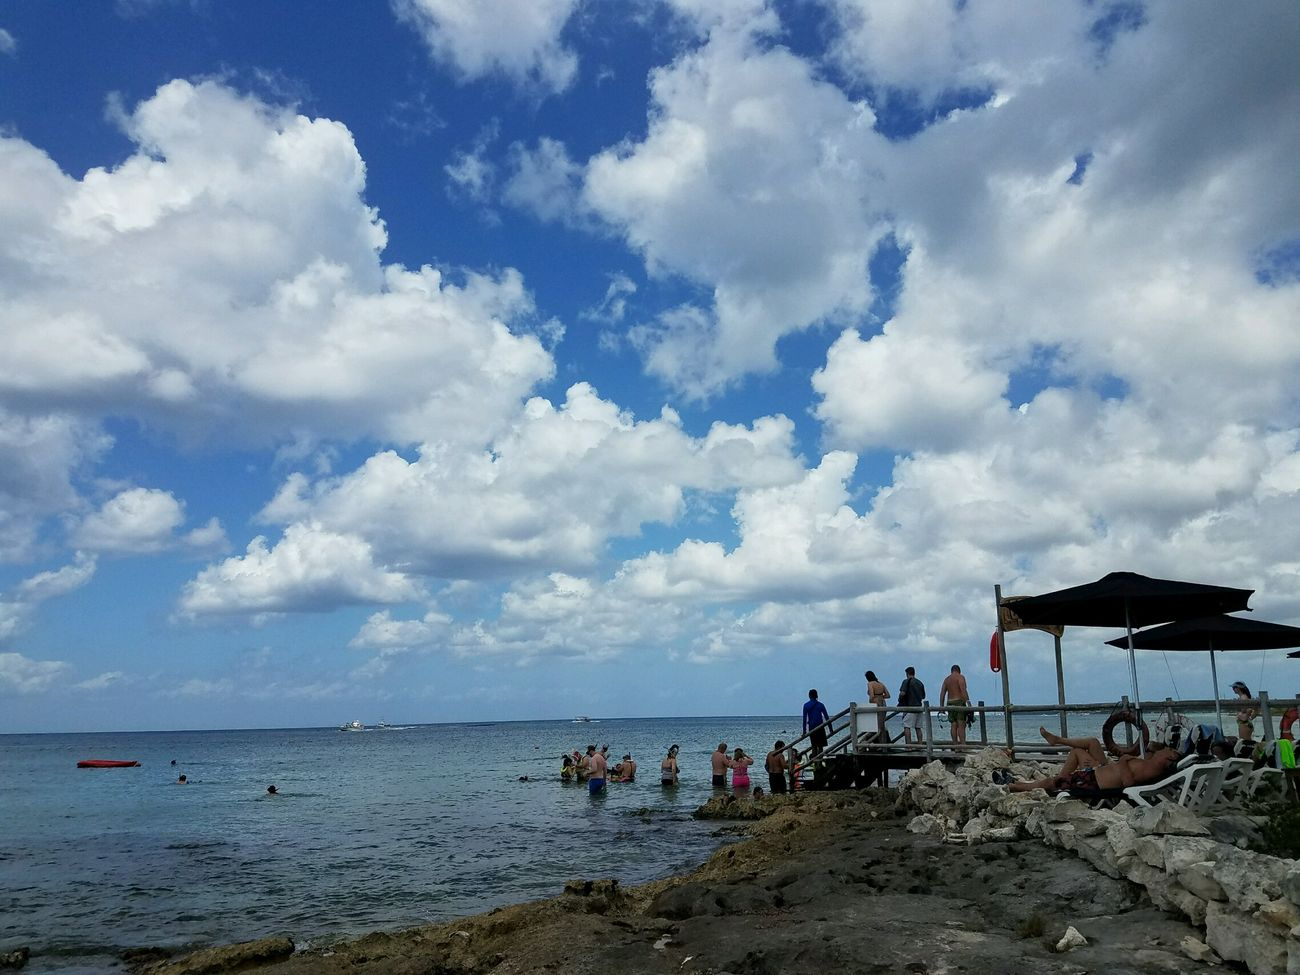 People watching 🤤👀 My Cloud Obsession☁️ My Cloud Love☁⛅ Its All About The Clouds🌤 Sky Reef Cozumelmexico Snorkeling Beach Cloud - Sky People Beauty In Nature CaptureTheMoment EyeEm Nature Lover Still Life EyeEm Best Shots EyeEm Gallery EyeEm Masterclass Happiness Landscape Sea Sea Life